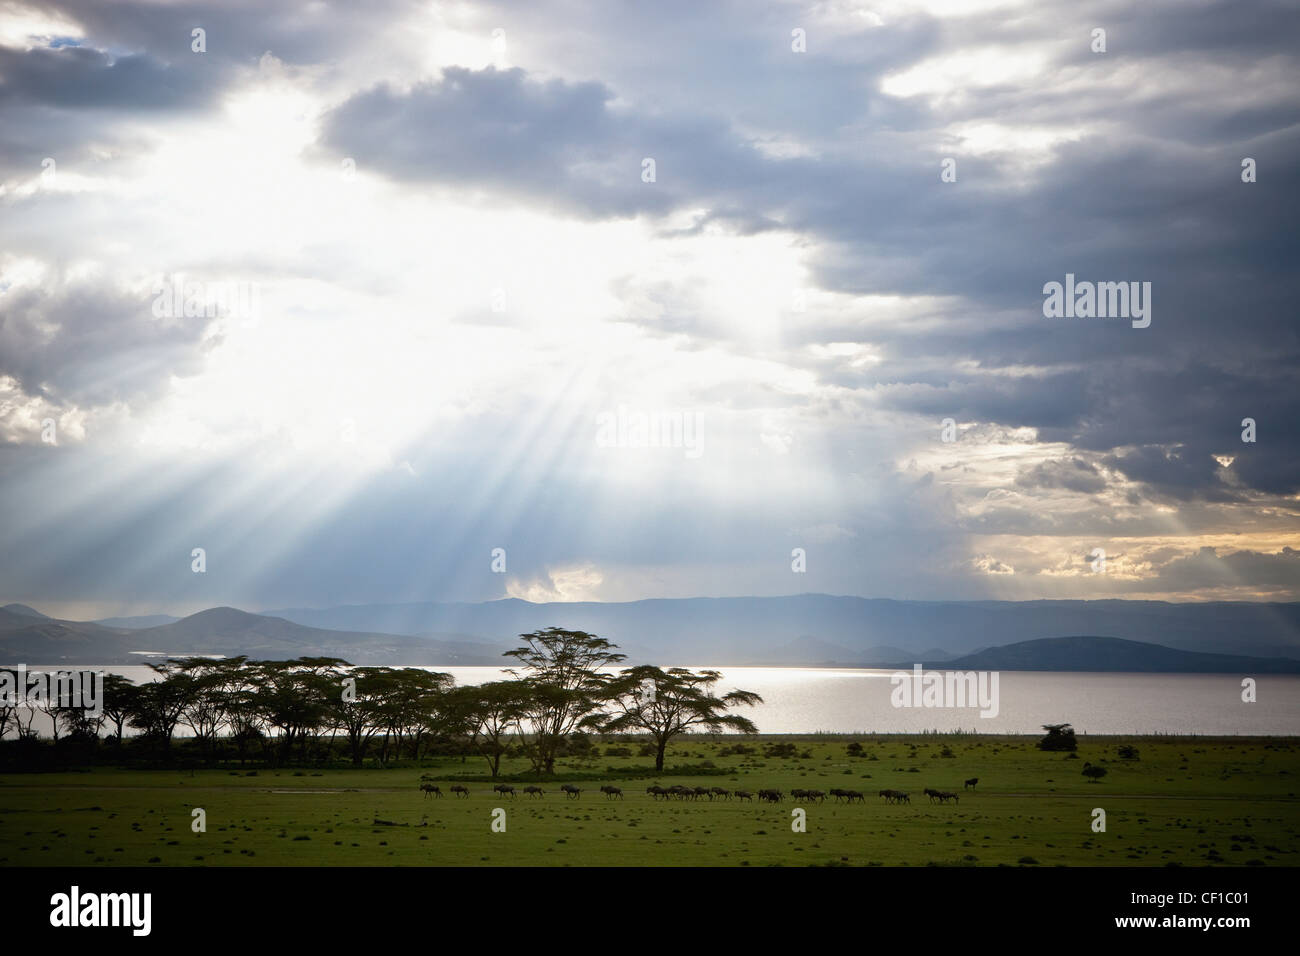 Sunlight Shines Down Through The Clouds Onto A Lake; Kenya Stock Photo